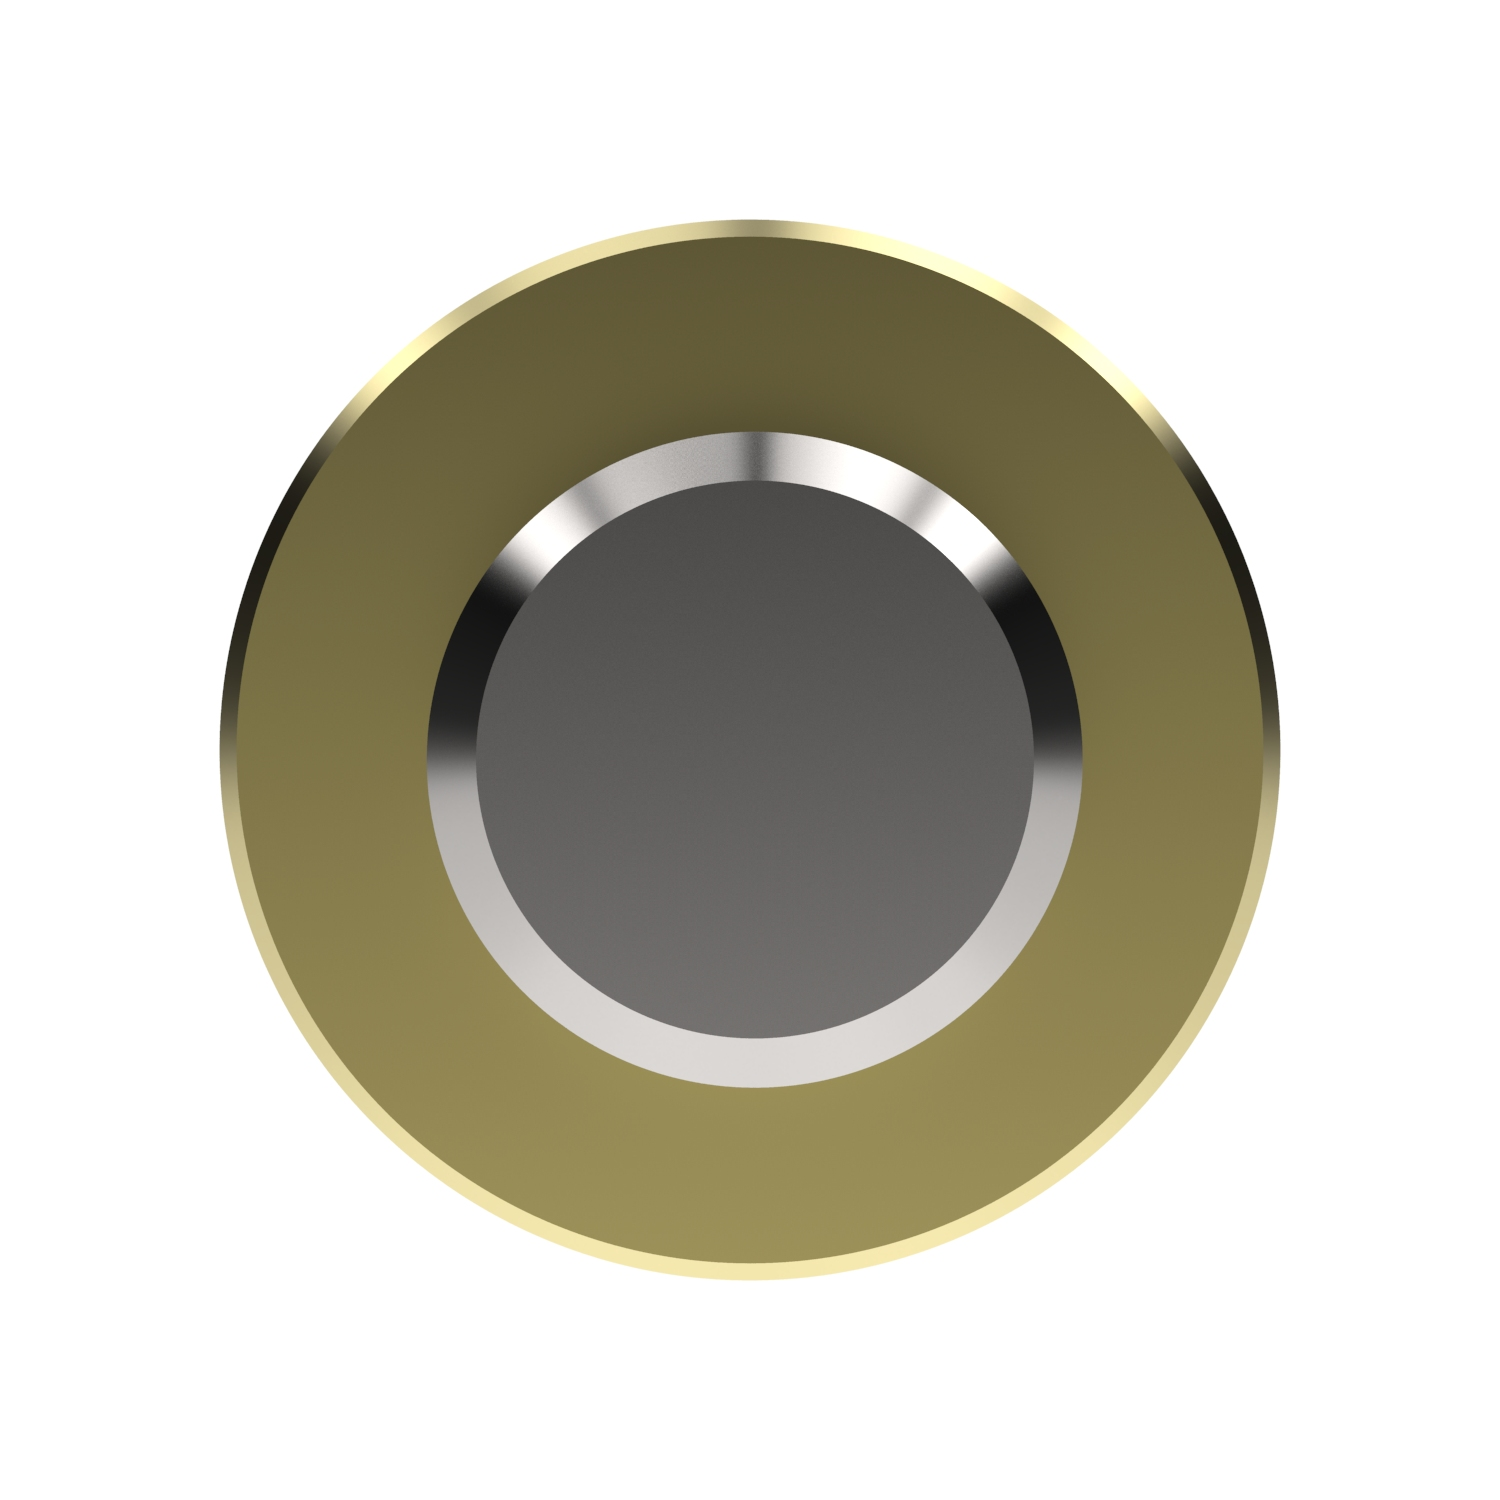 Acme Sleeve Nut - Bronze -6mm- .039mm LH